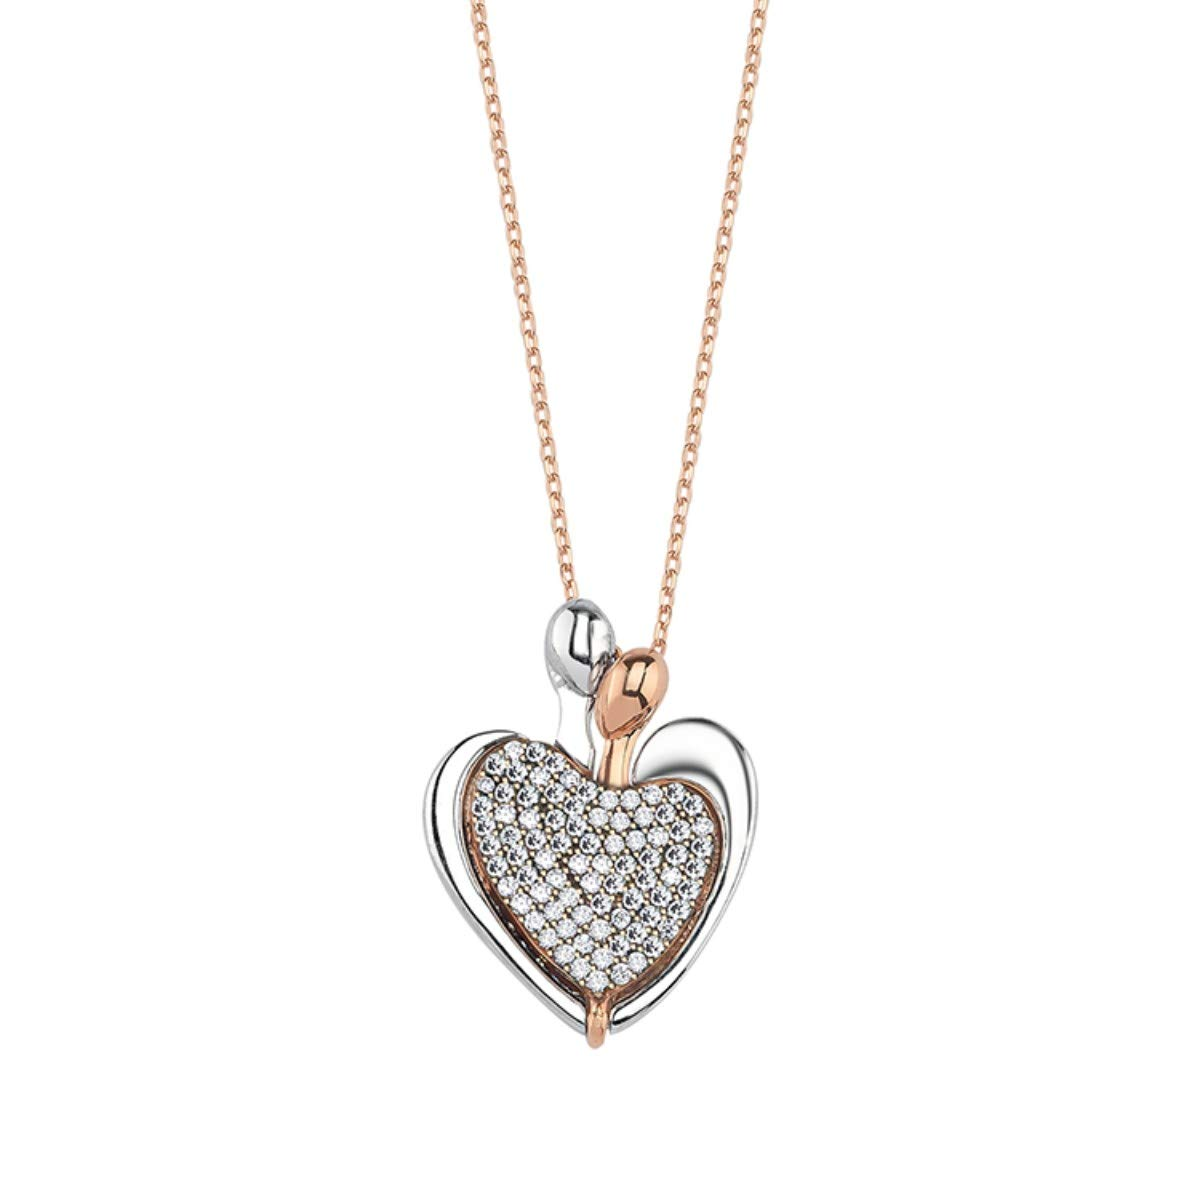 19 mm x 26 mm Available in Colours White//Gold//Rose Sterling Silver Size Creo Pendant Fashion Jwellery Valentines Love Heart Design